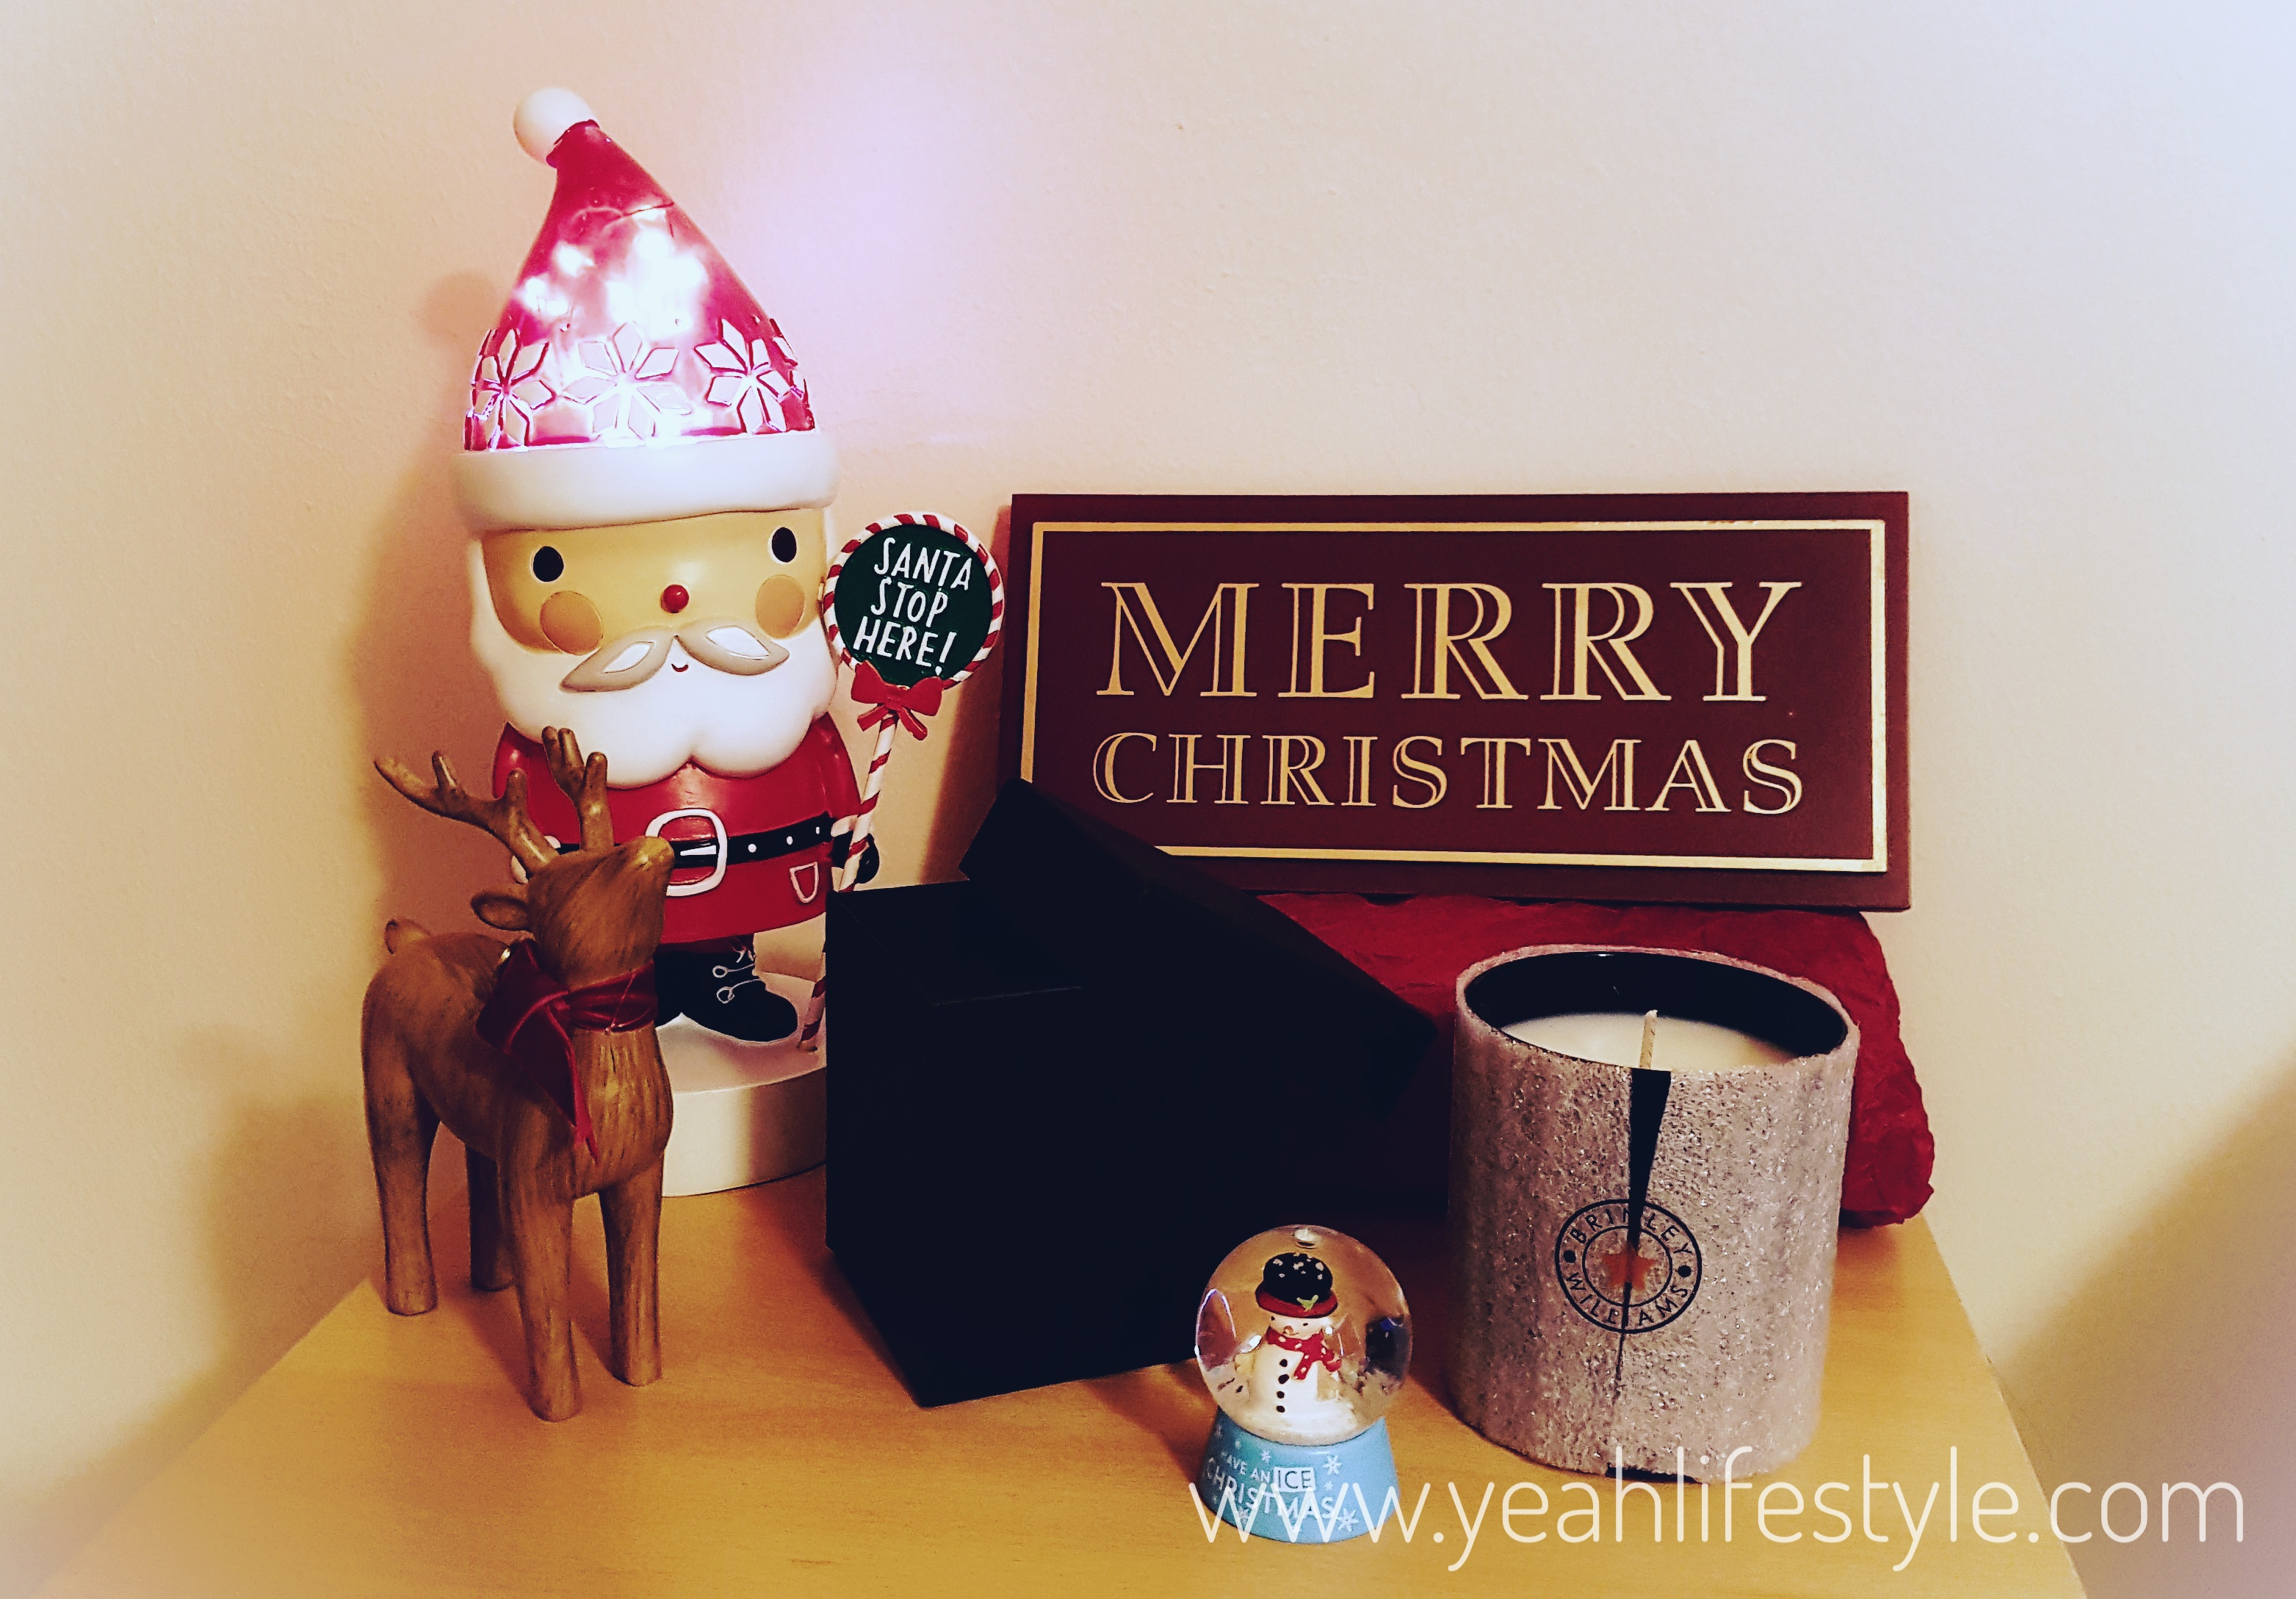 personalised-christmas-gift-idea-candle-yeah-lifestyle-blogger-review